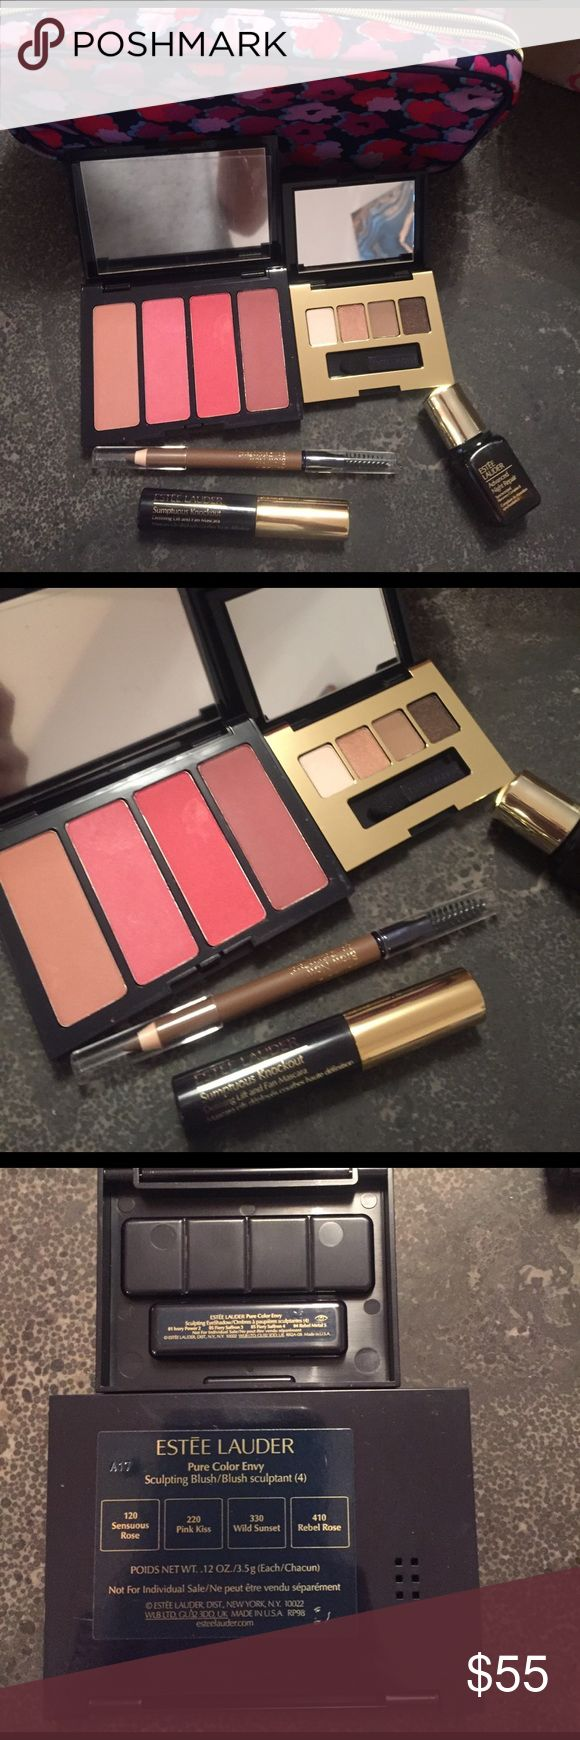 Estée Lauder 6 piece makeup bundle NWT never opened or used. Brand new. Free gift with every purchase! Estee Lauder Makeup